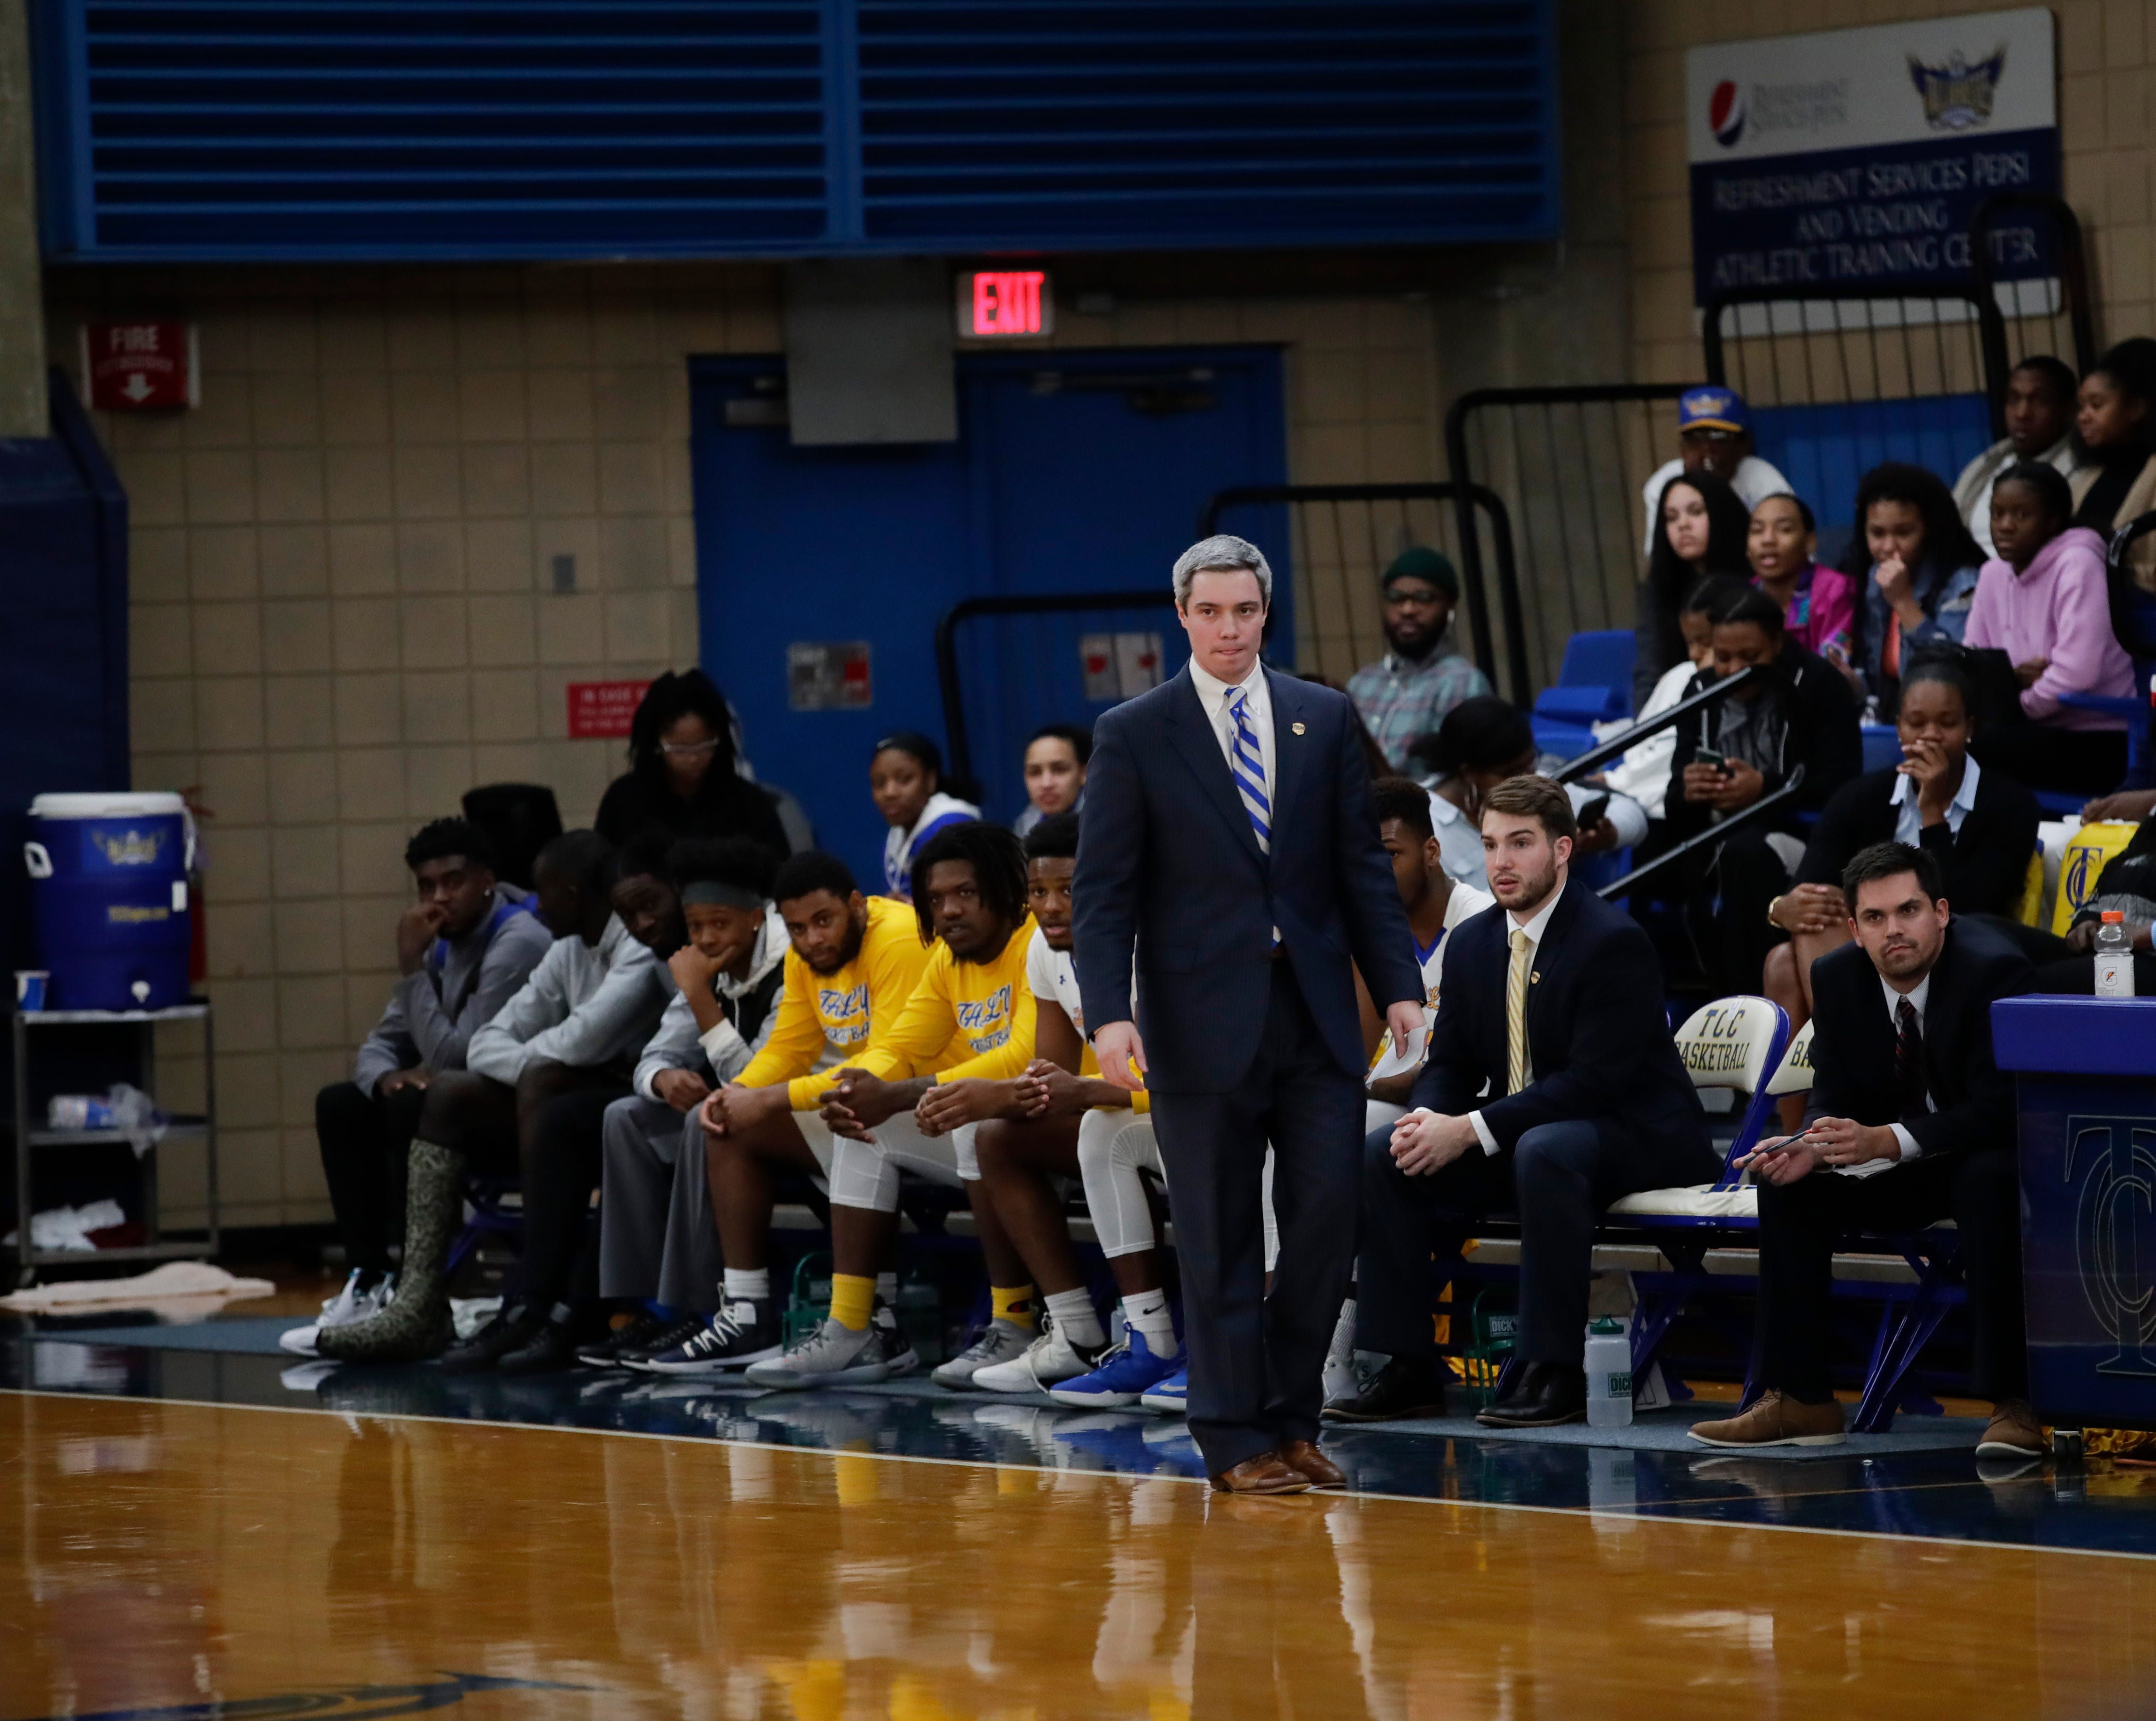 Tallahassee Community College named Zach Settembre as the head coach of the men's basketball program on March 26, 2019. Settembre served as interim coach since January.